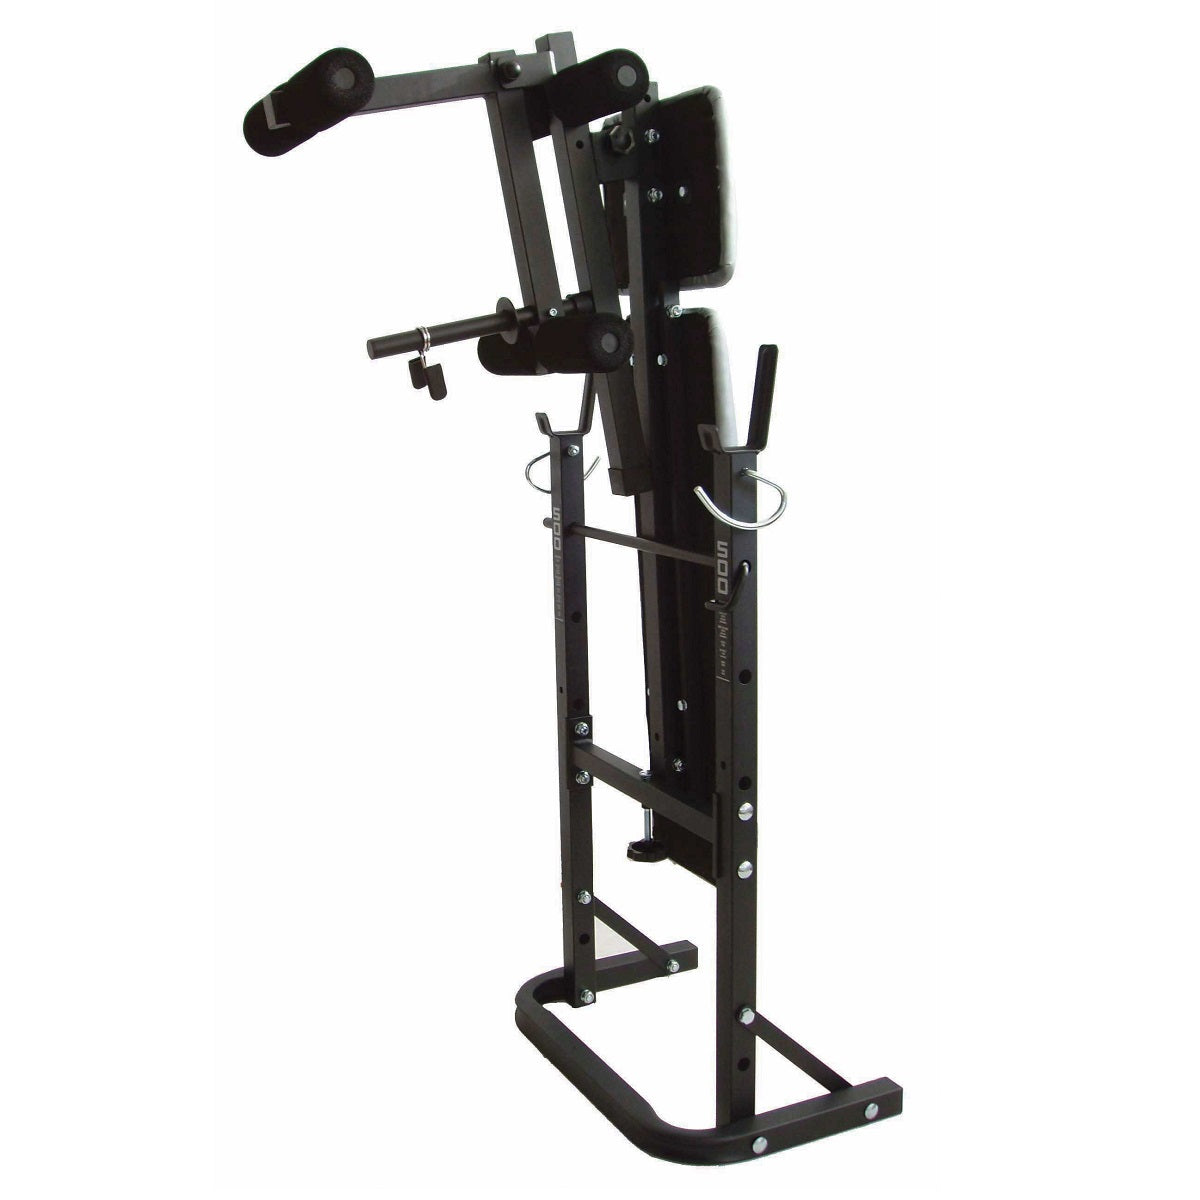 North York Personal Trainer For In Home: York Fitness 500 Folding Barbell Bench